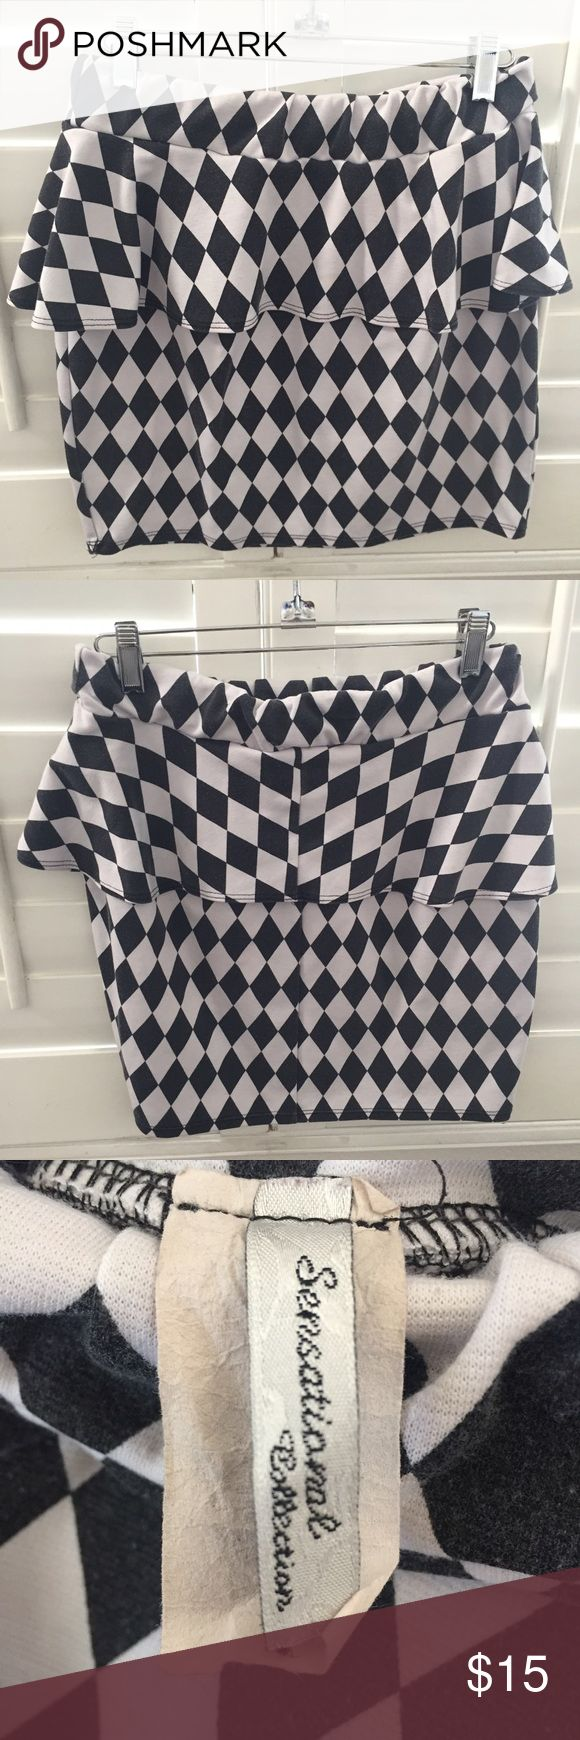 ❤️ SENSATIONAL COLLECTION checked peplum skirt So girly and edgy at the same time. It can cater to different types of style. Some pilling on it but still looks great in pictures. The size has faded but I think it's medium or large. Sensational Collection Skirts Mini